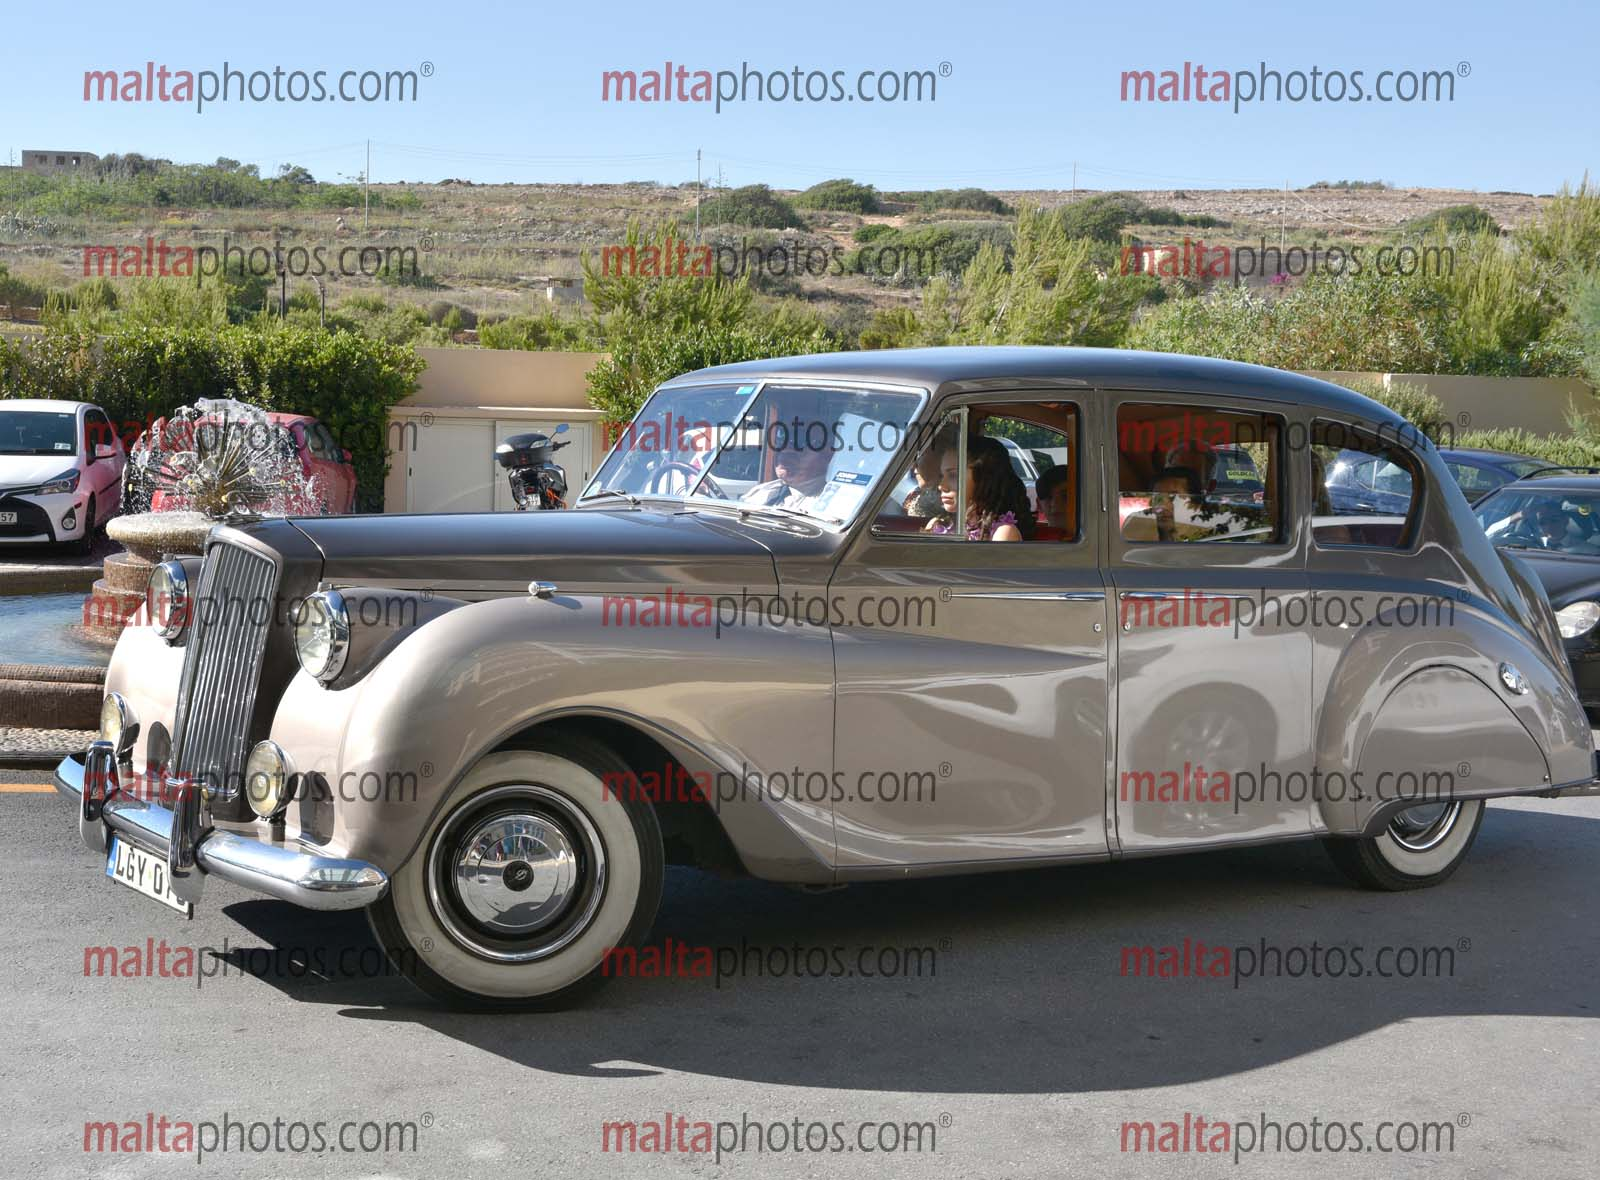 Vehicles Vintage Old Classic Cars - Malta Photos